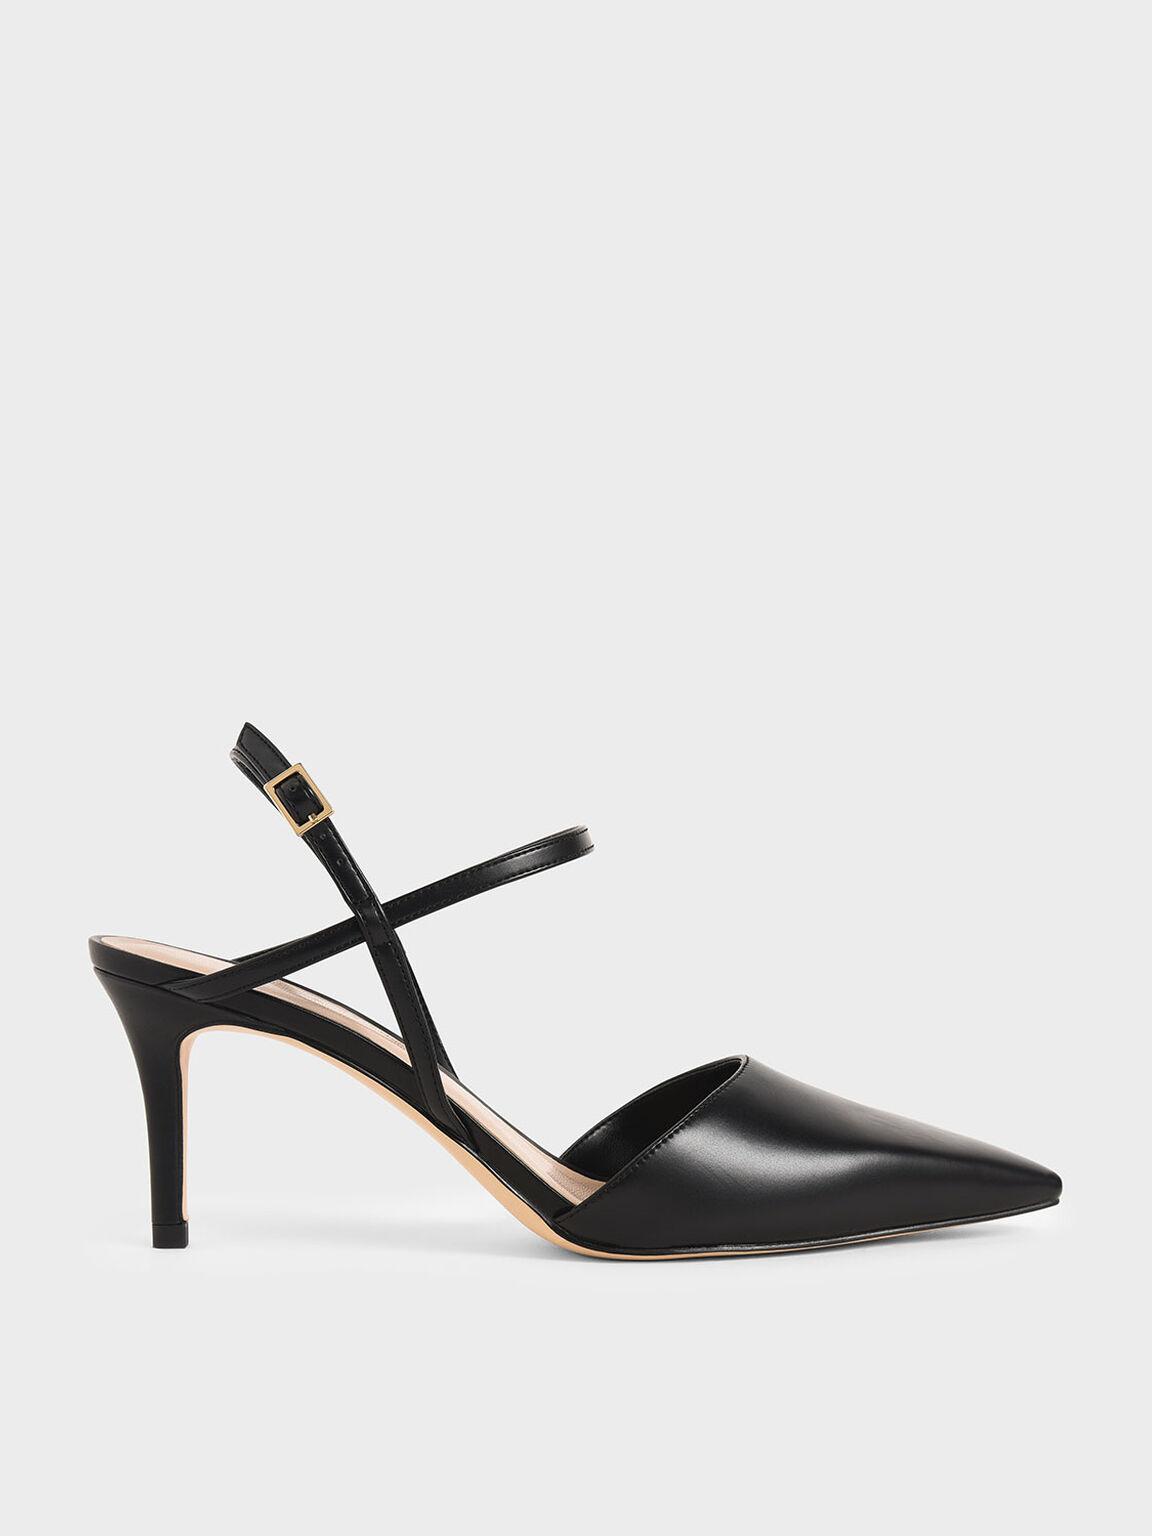 Ankle Strap Stiletto Pumps, Black, hi-res